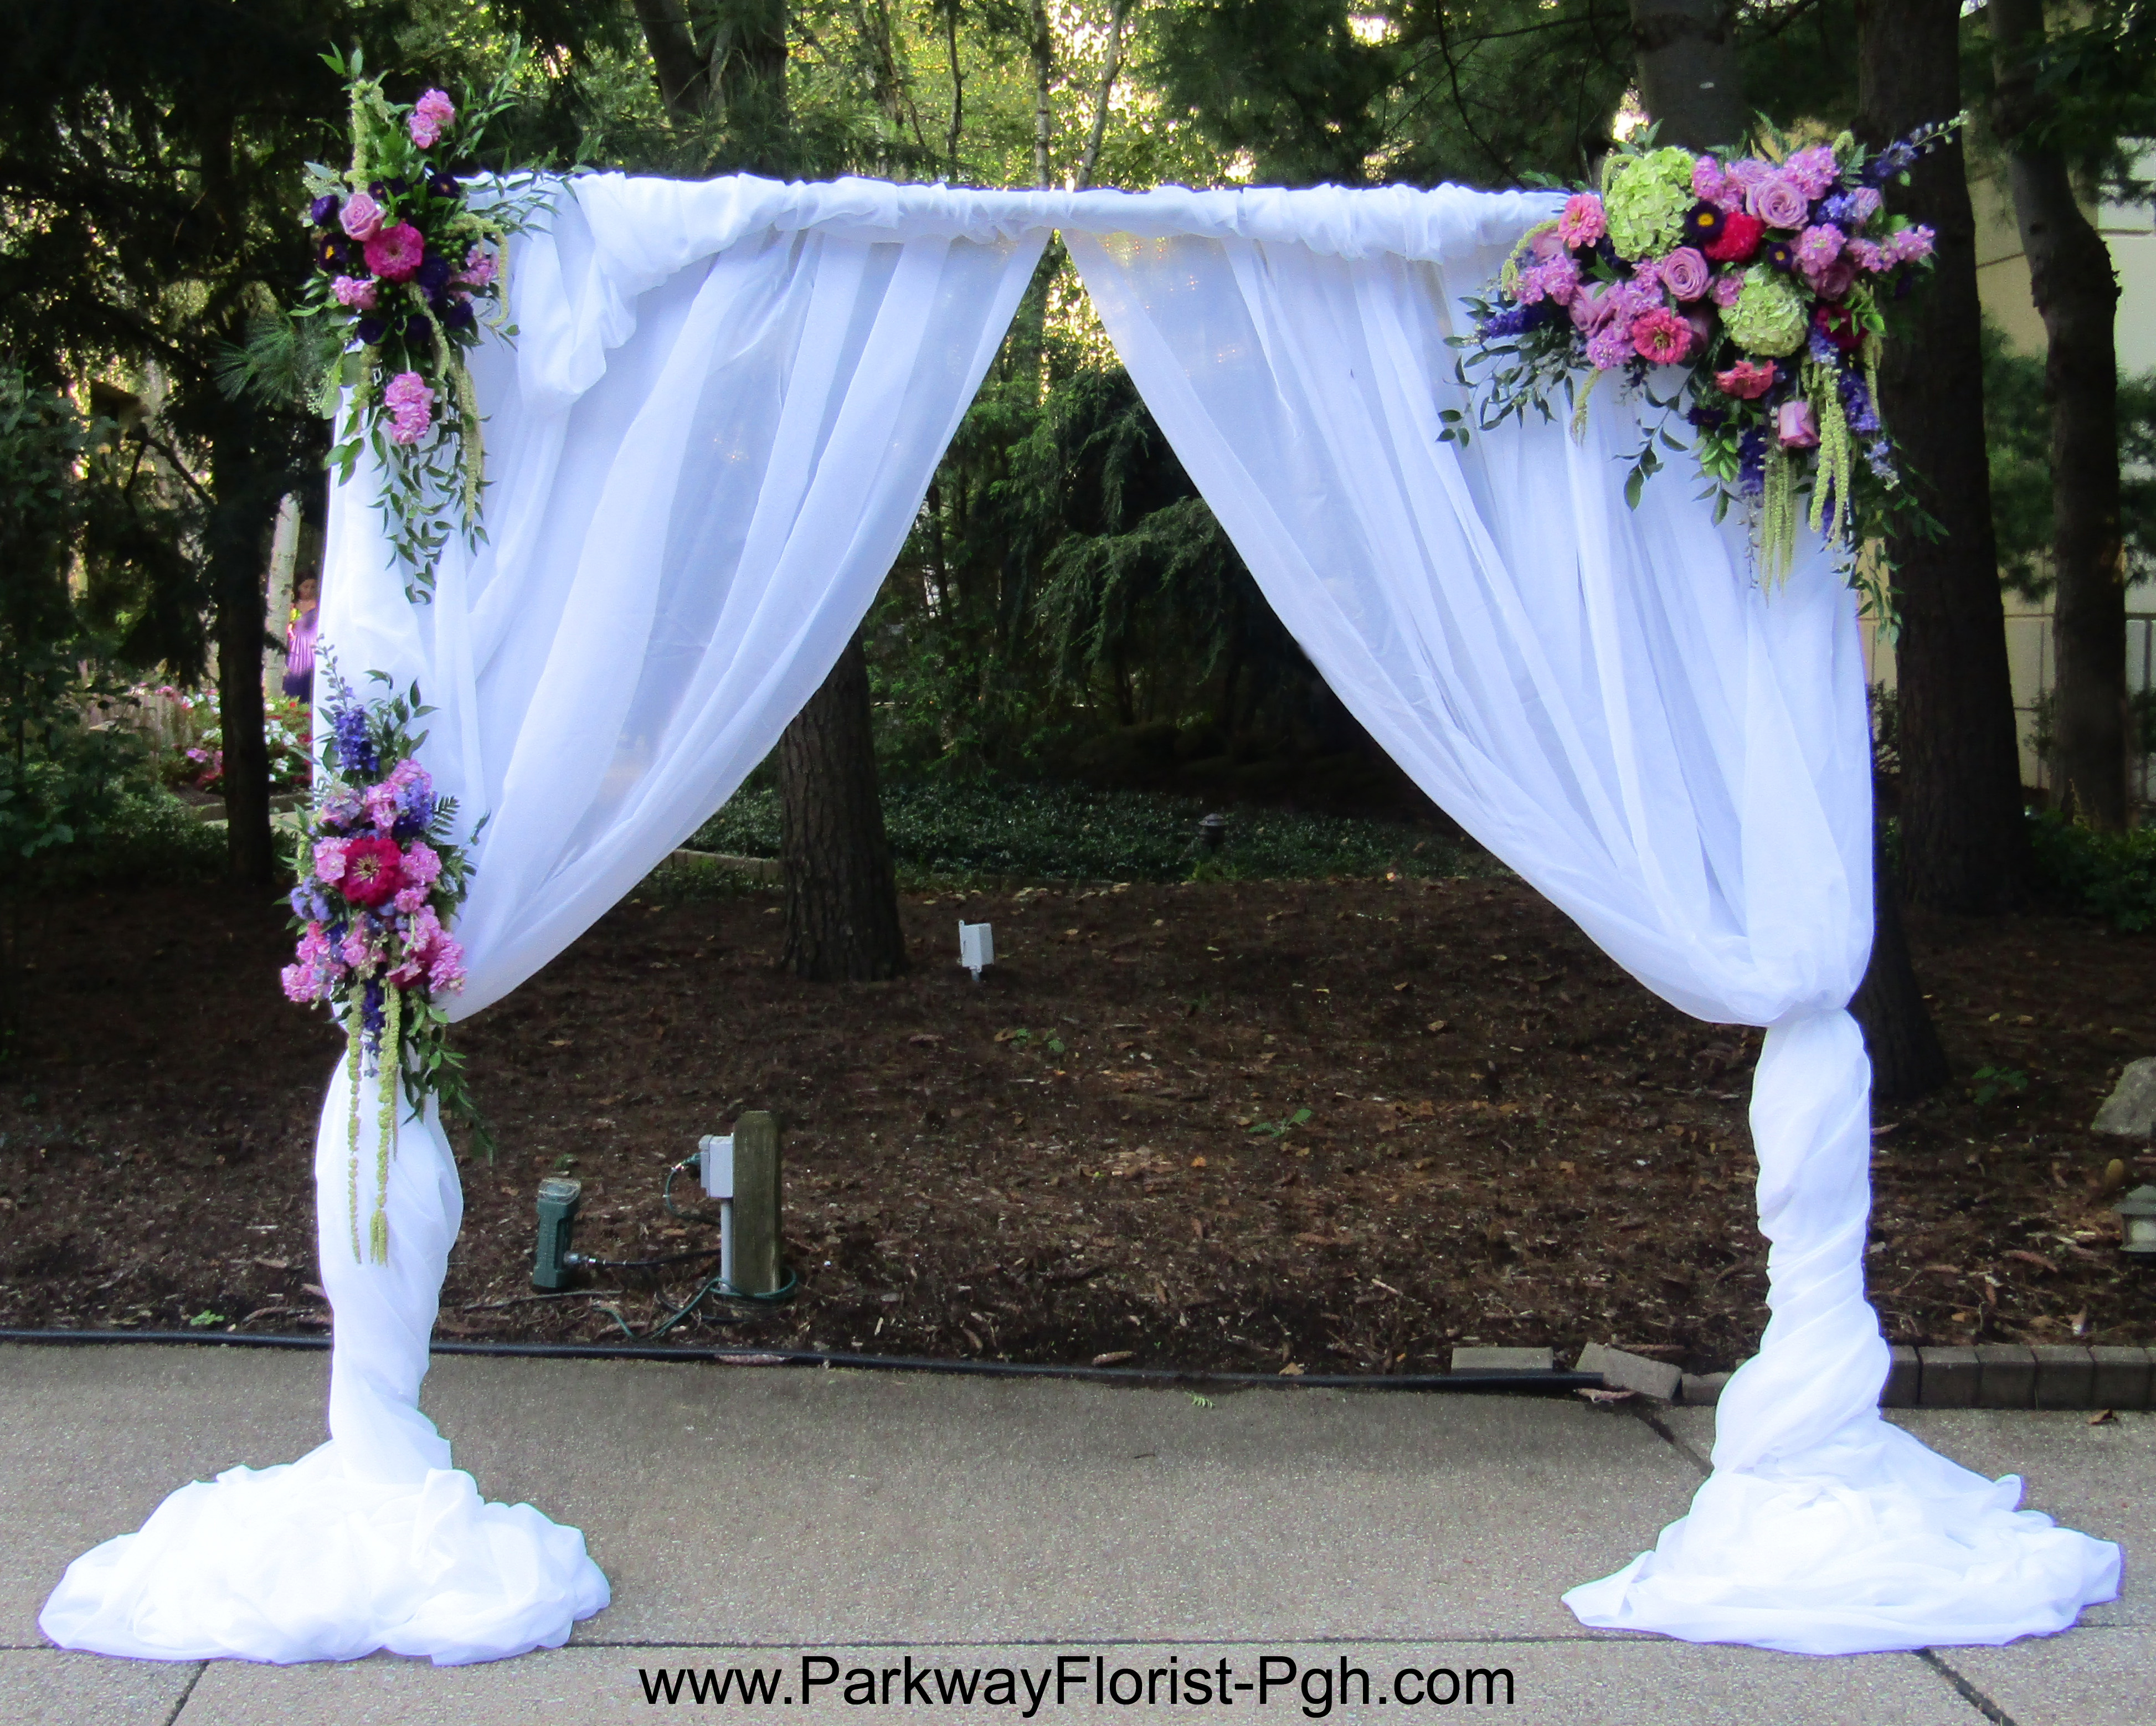 Pipe and Drape with FLower Clusters